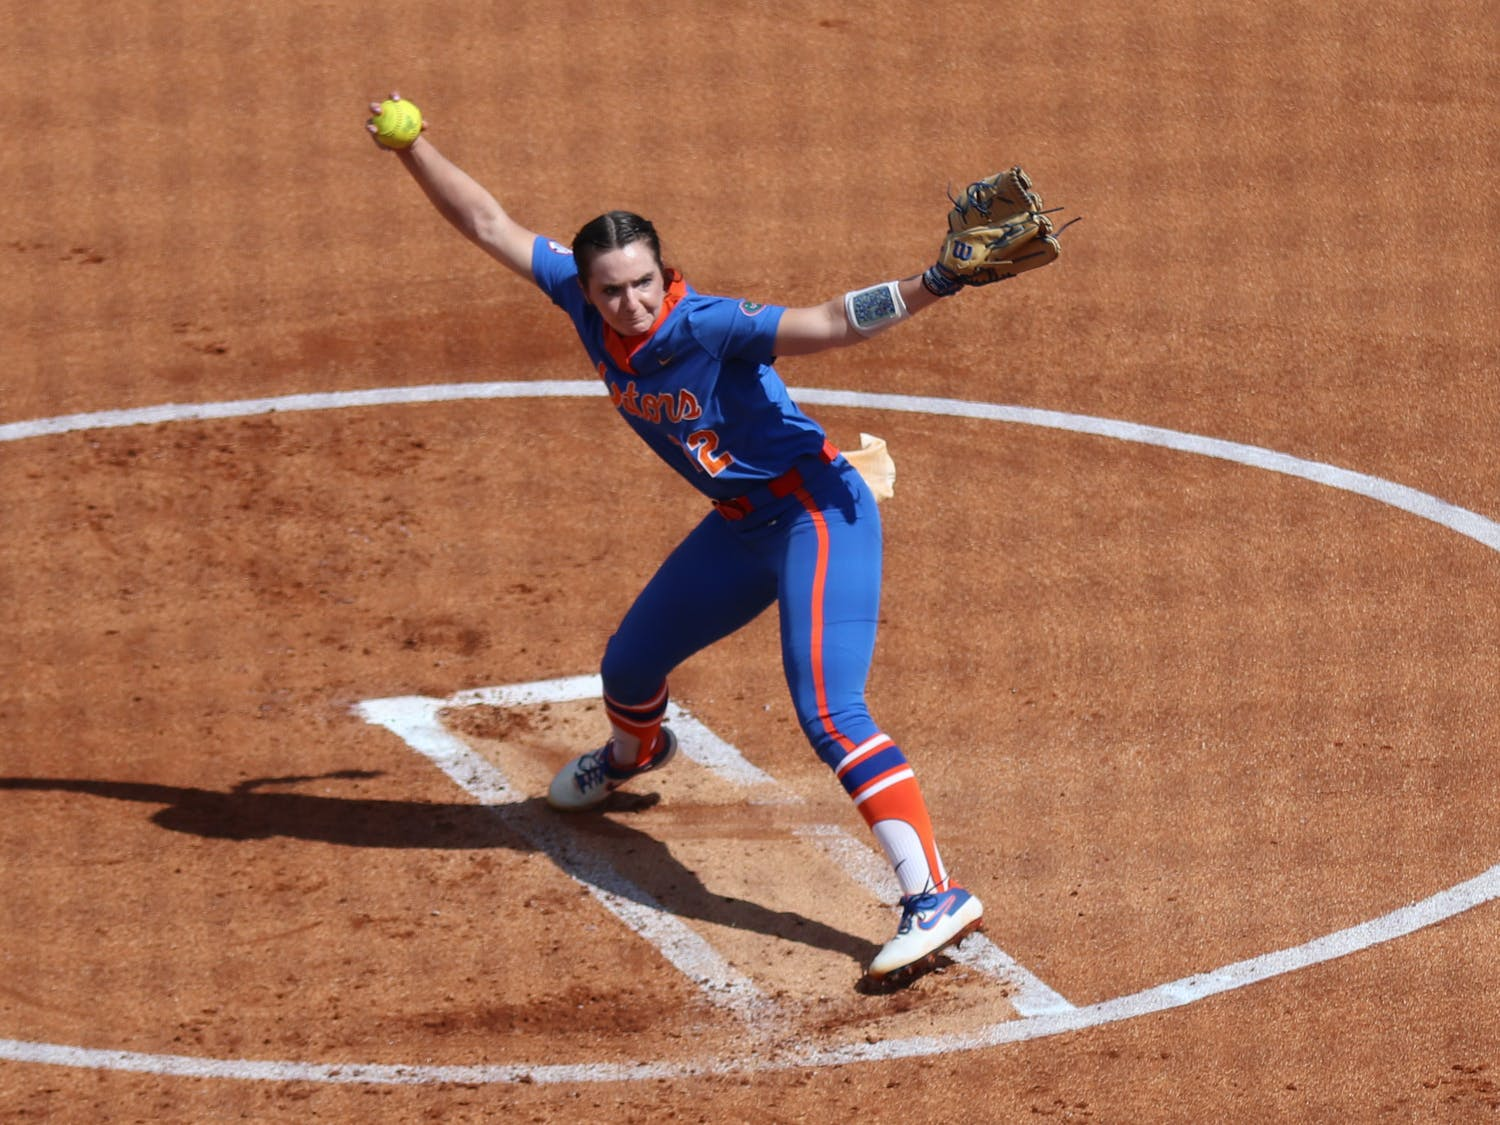 Florida's Elizabeth Hightower pitches against Louisville on February 27. Hightower tossed her first career no-hitter against South Florida Sunday to help propel Florida to the Super Regional against rival Georiga.